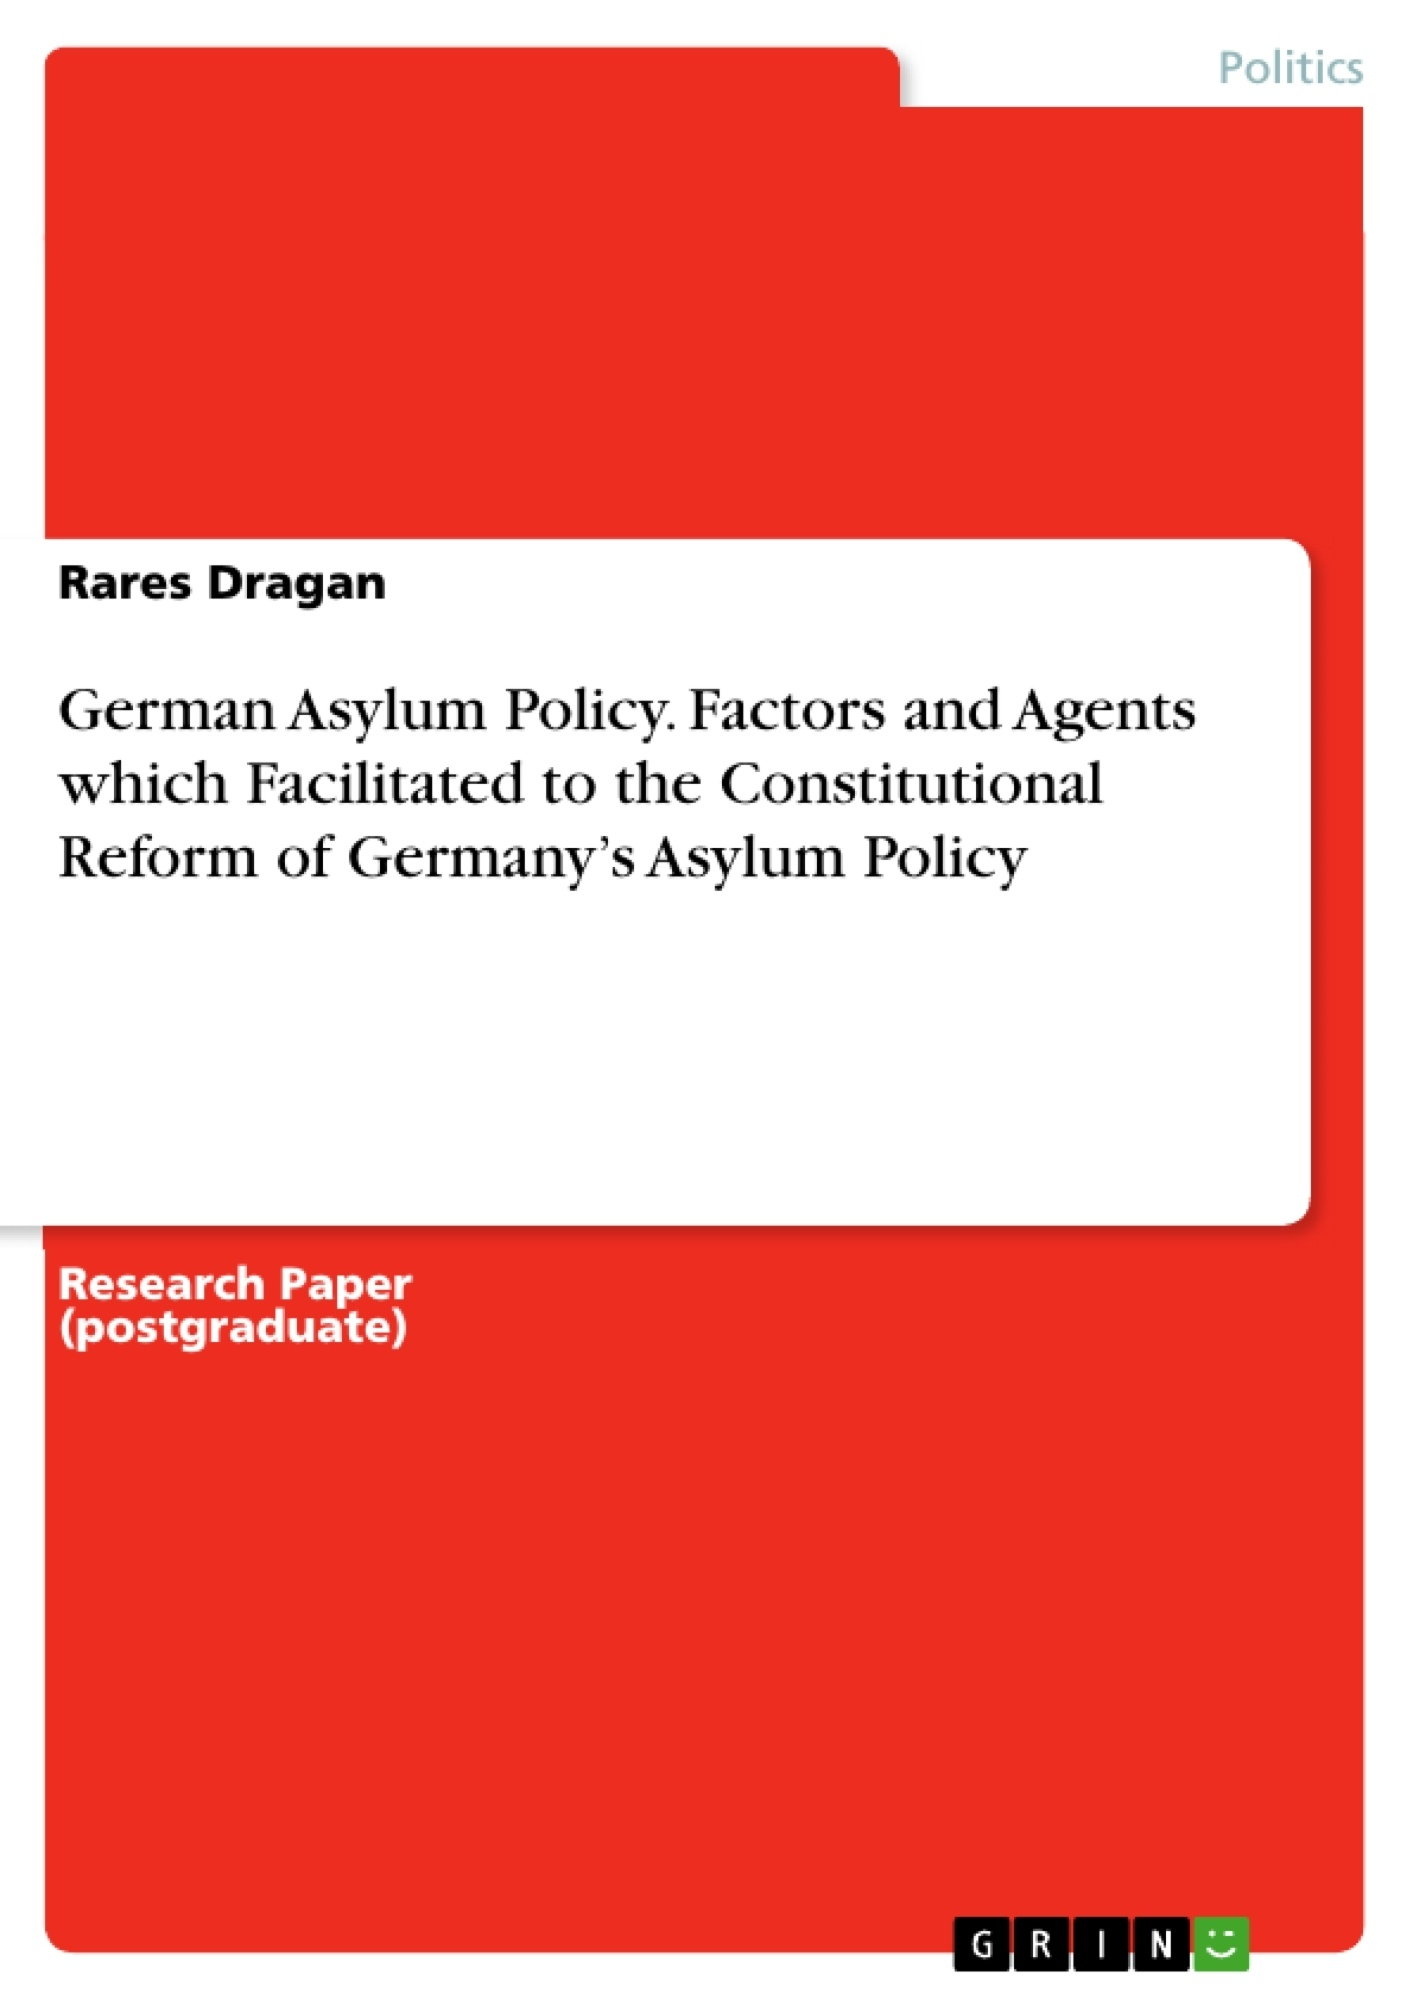 Title: German Asylum Policy. Factors and Agents which Facilitated to the Constitutional Reform of Germany's Asylum Policy